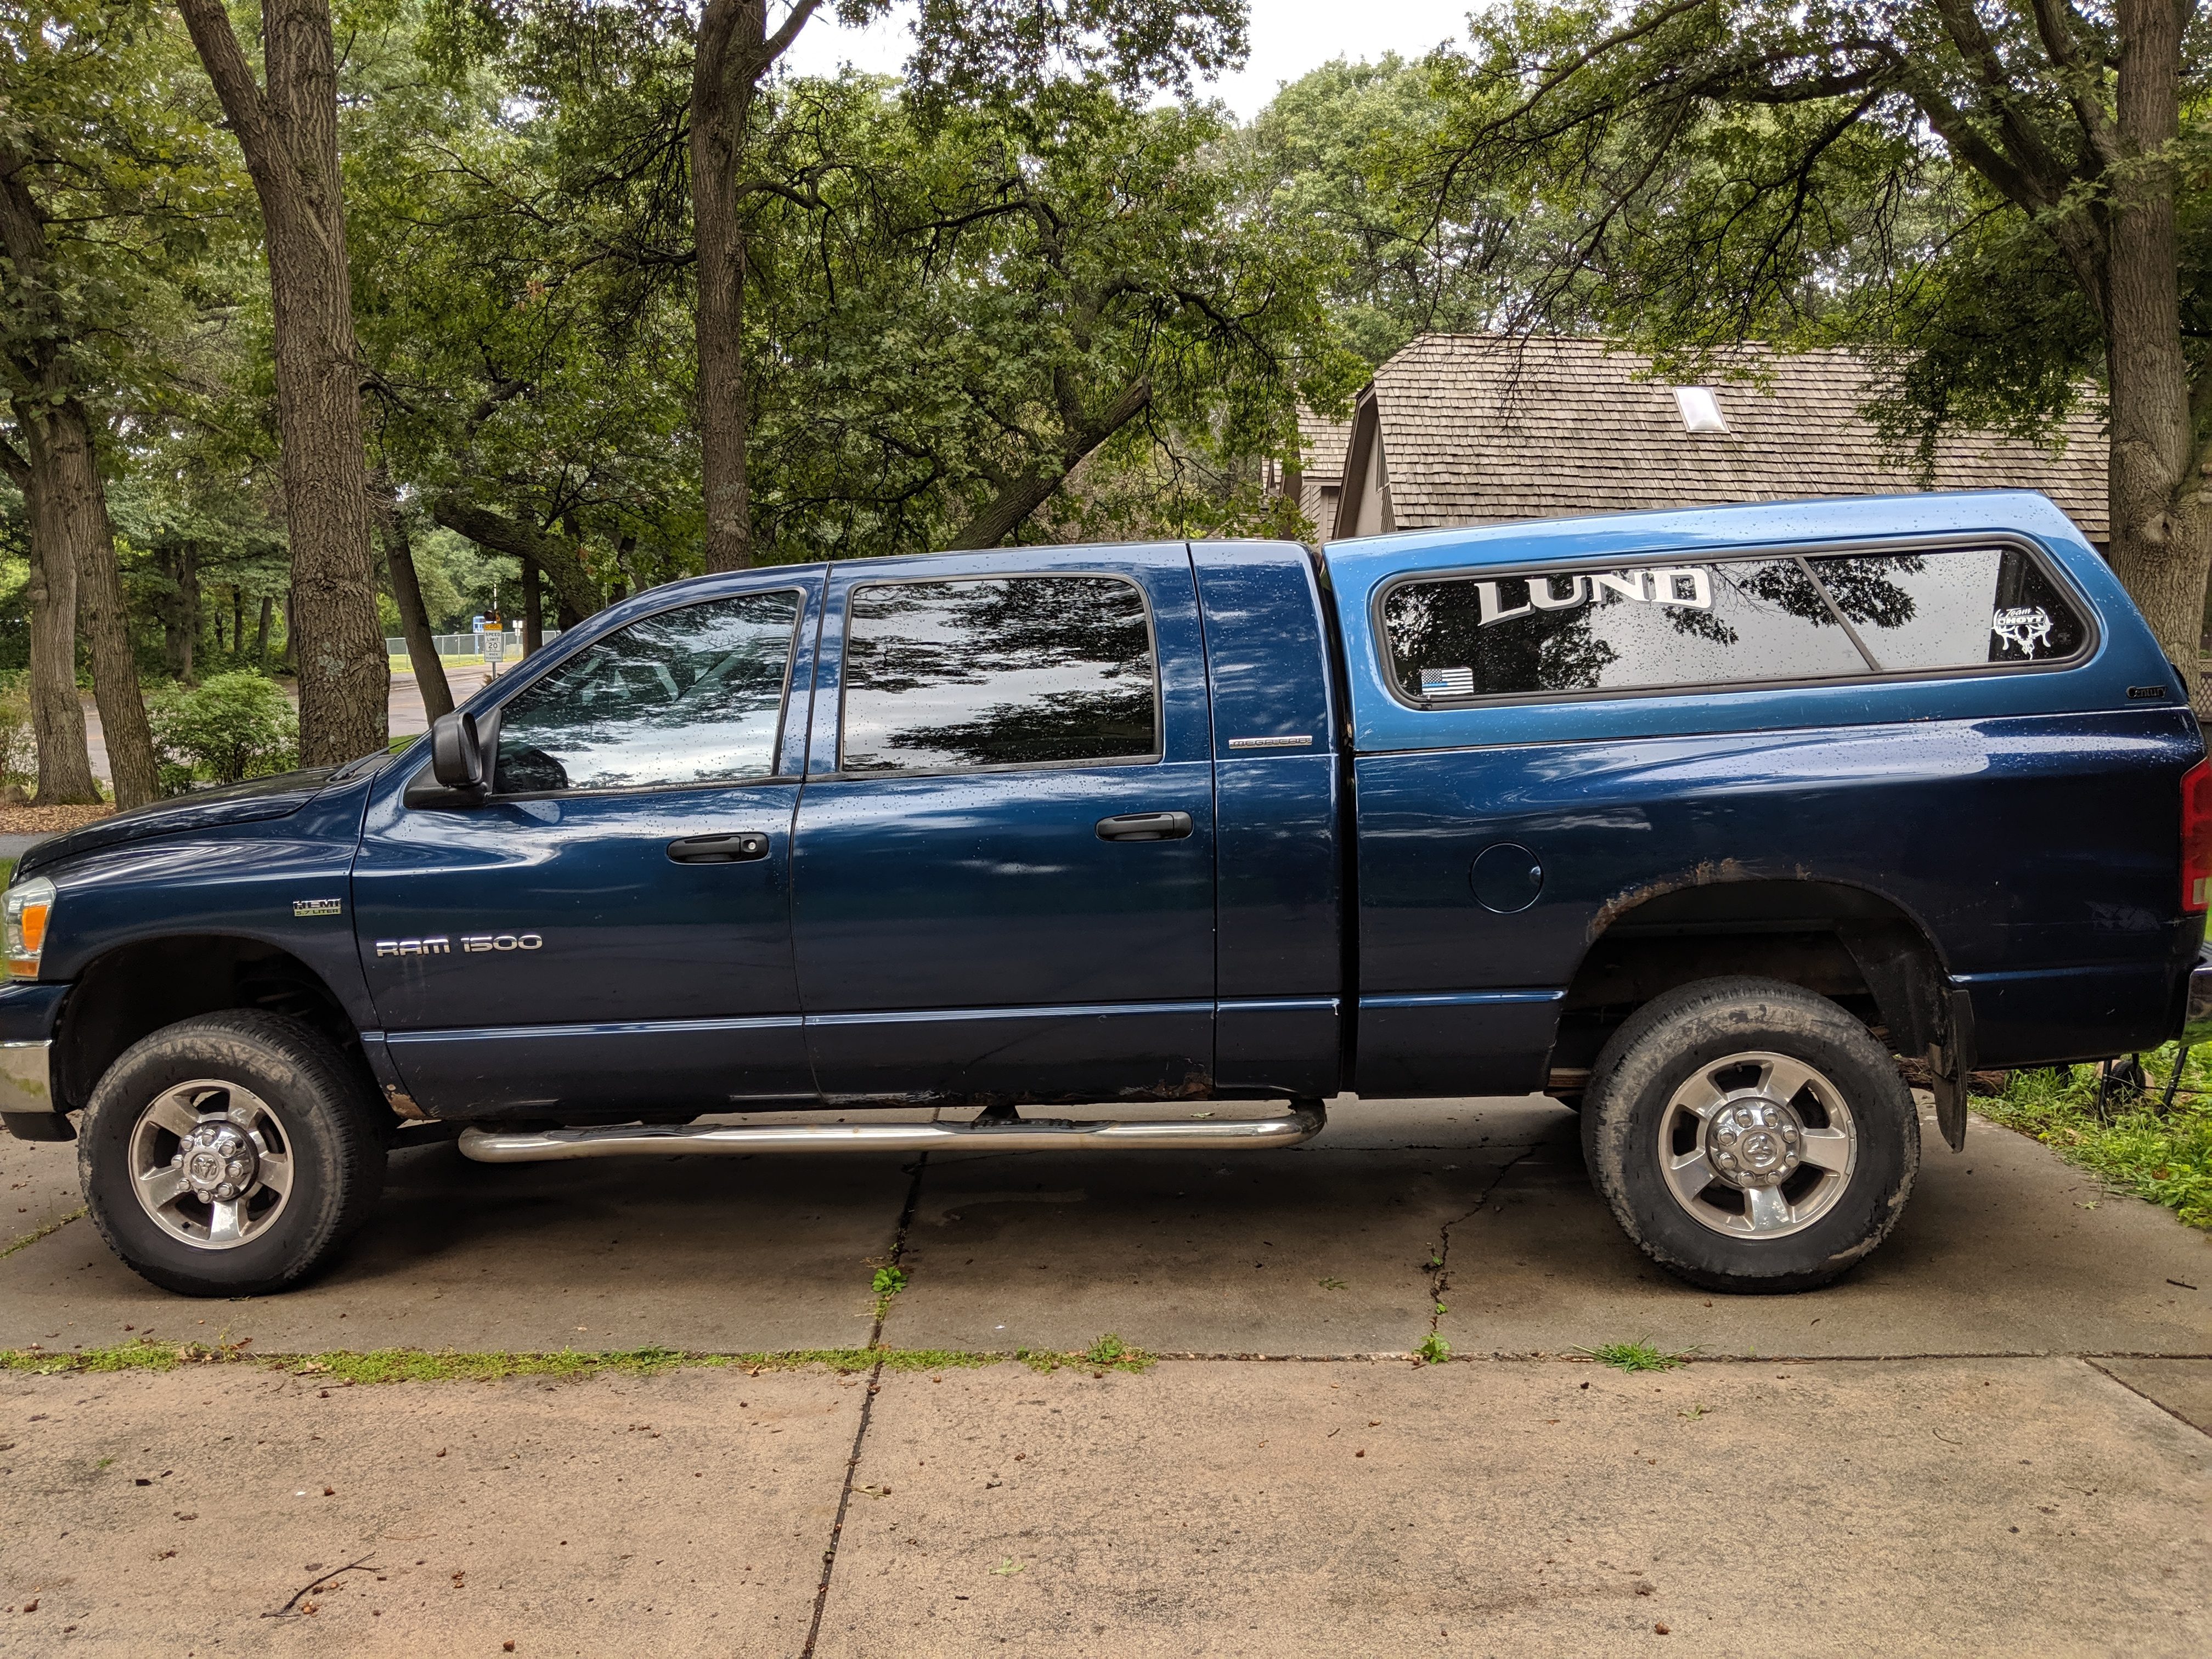 2006 Dodge Ram $8500 - Classified Ads | In-Depth Outdoors